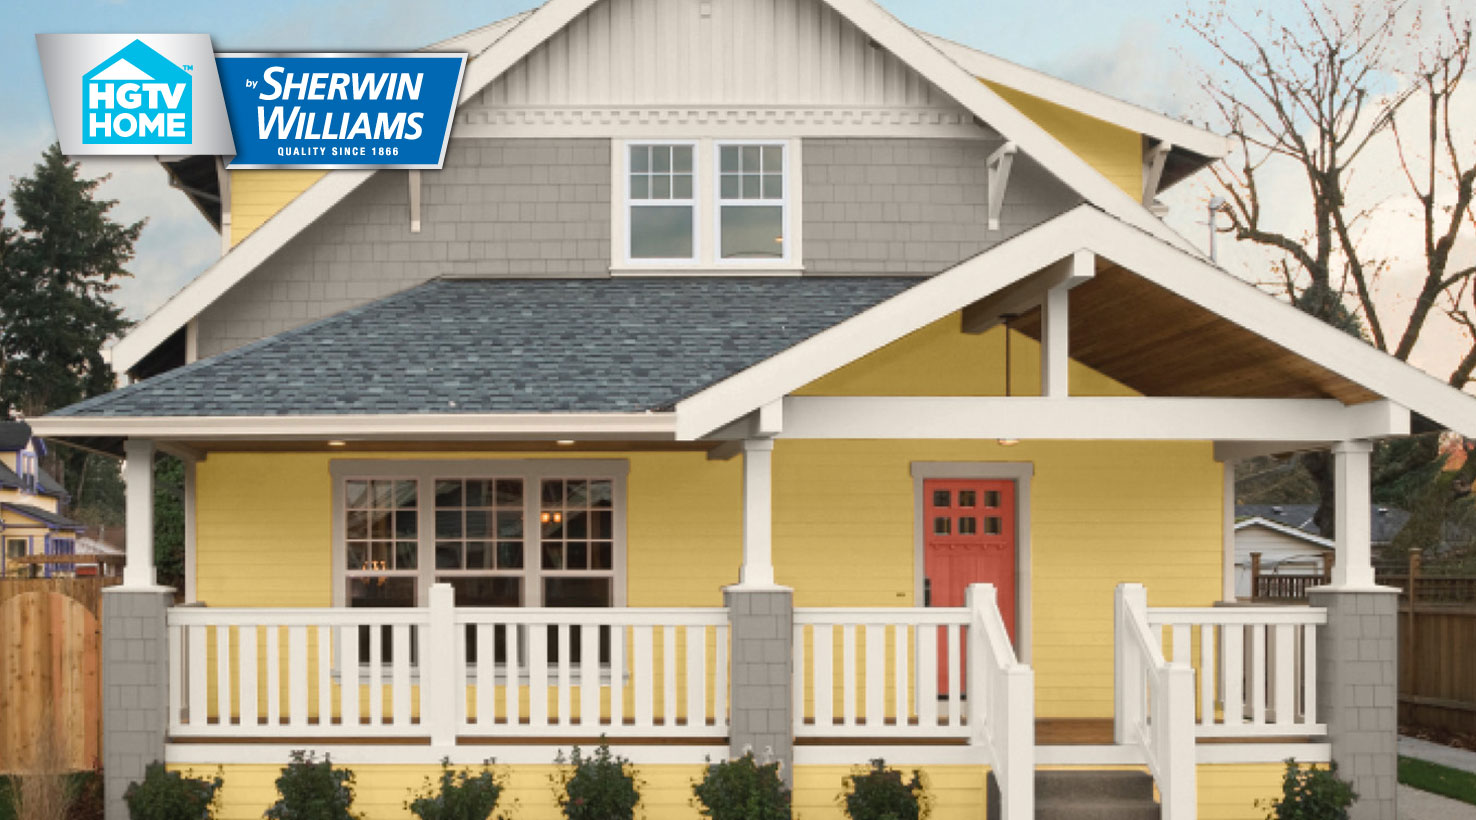 Softer side sherwin williams for Exterior sherwin williams paint colors